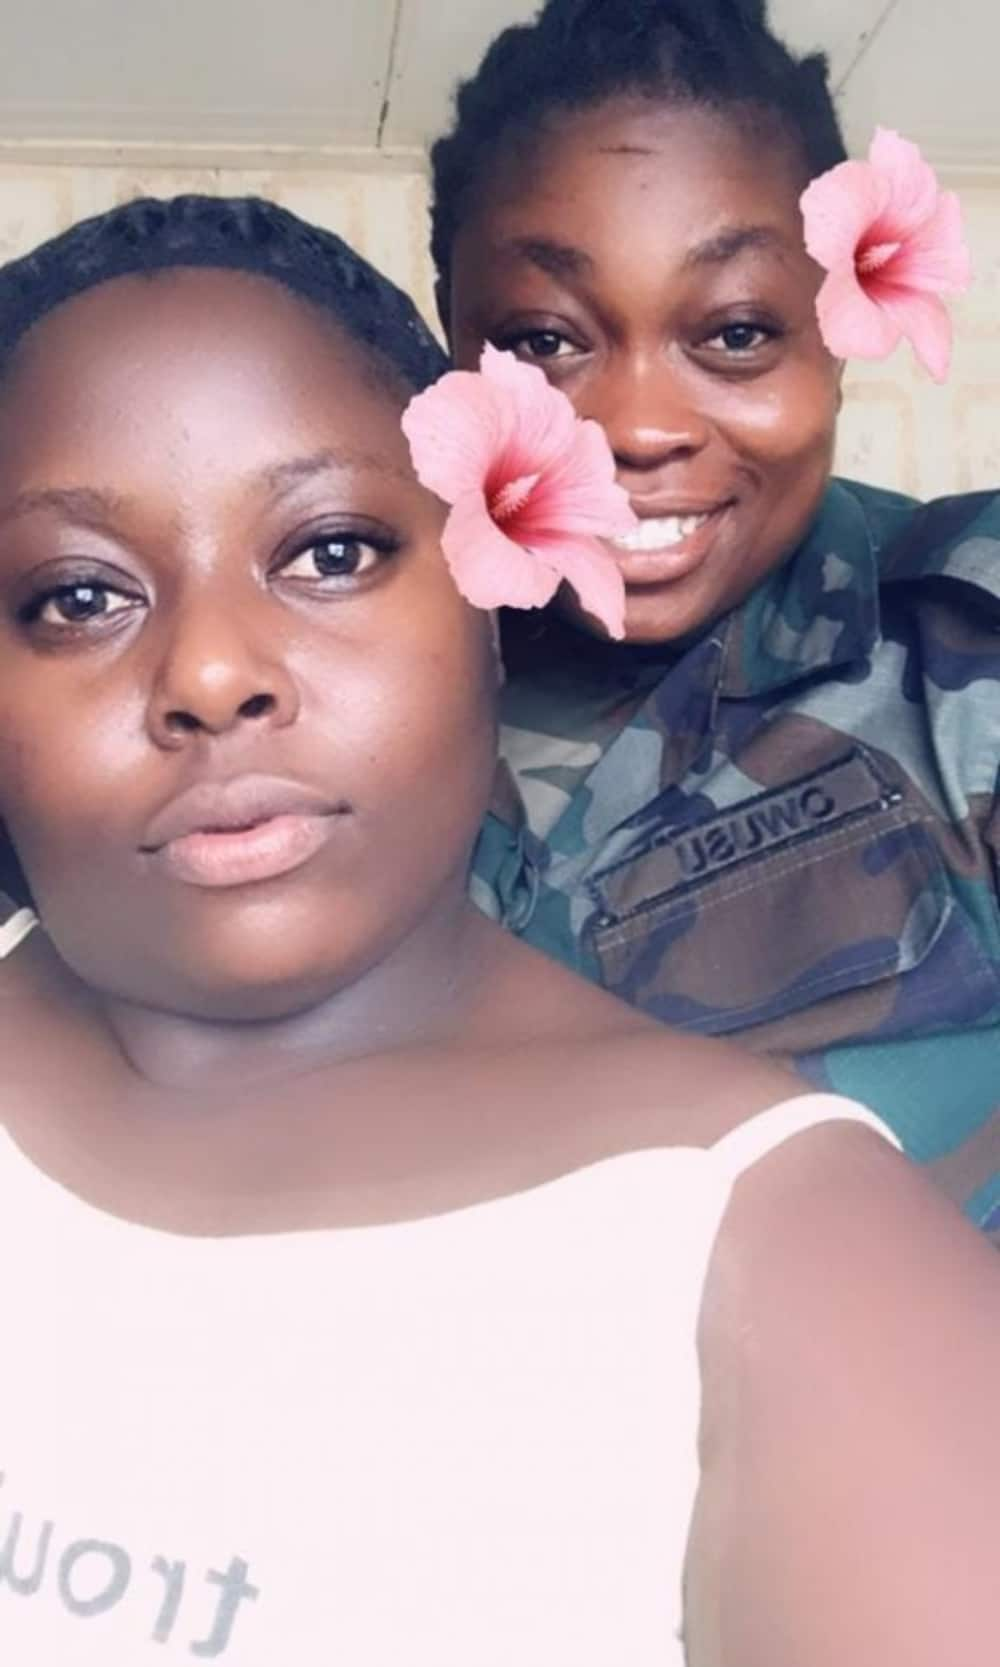 Lady in lesbian wedding video is reportedly a soldier; faces sanctions